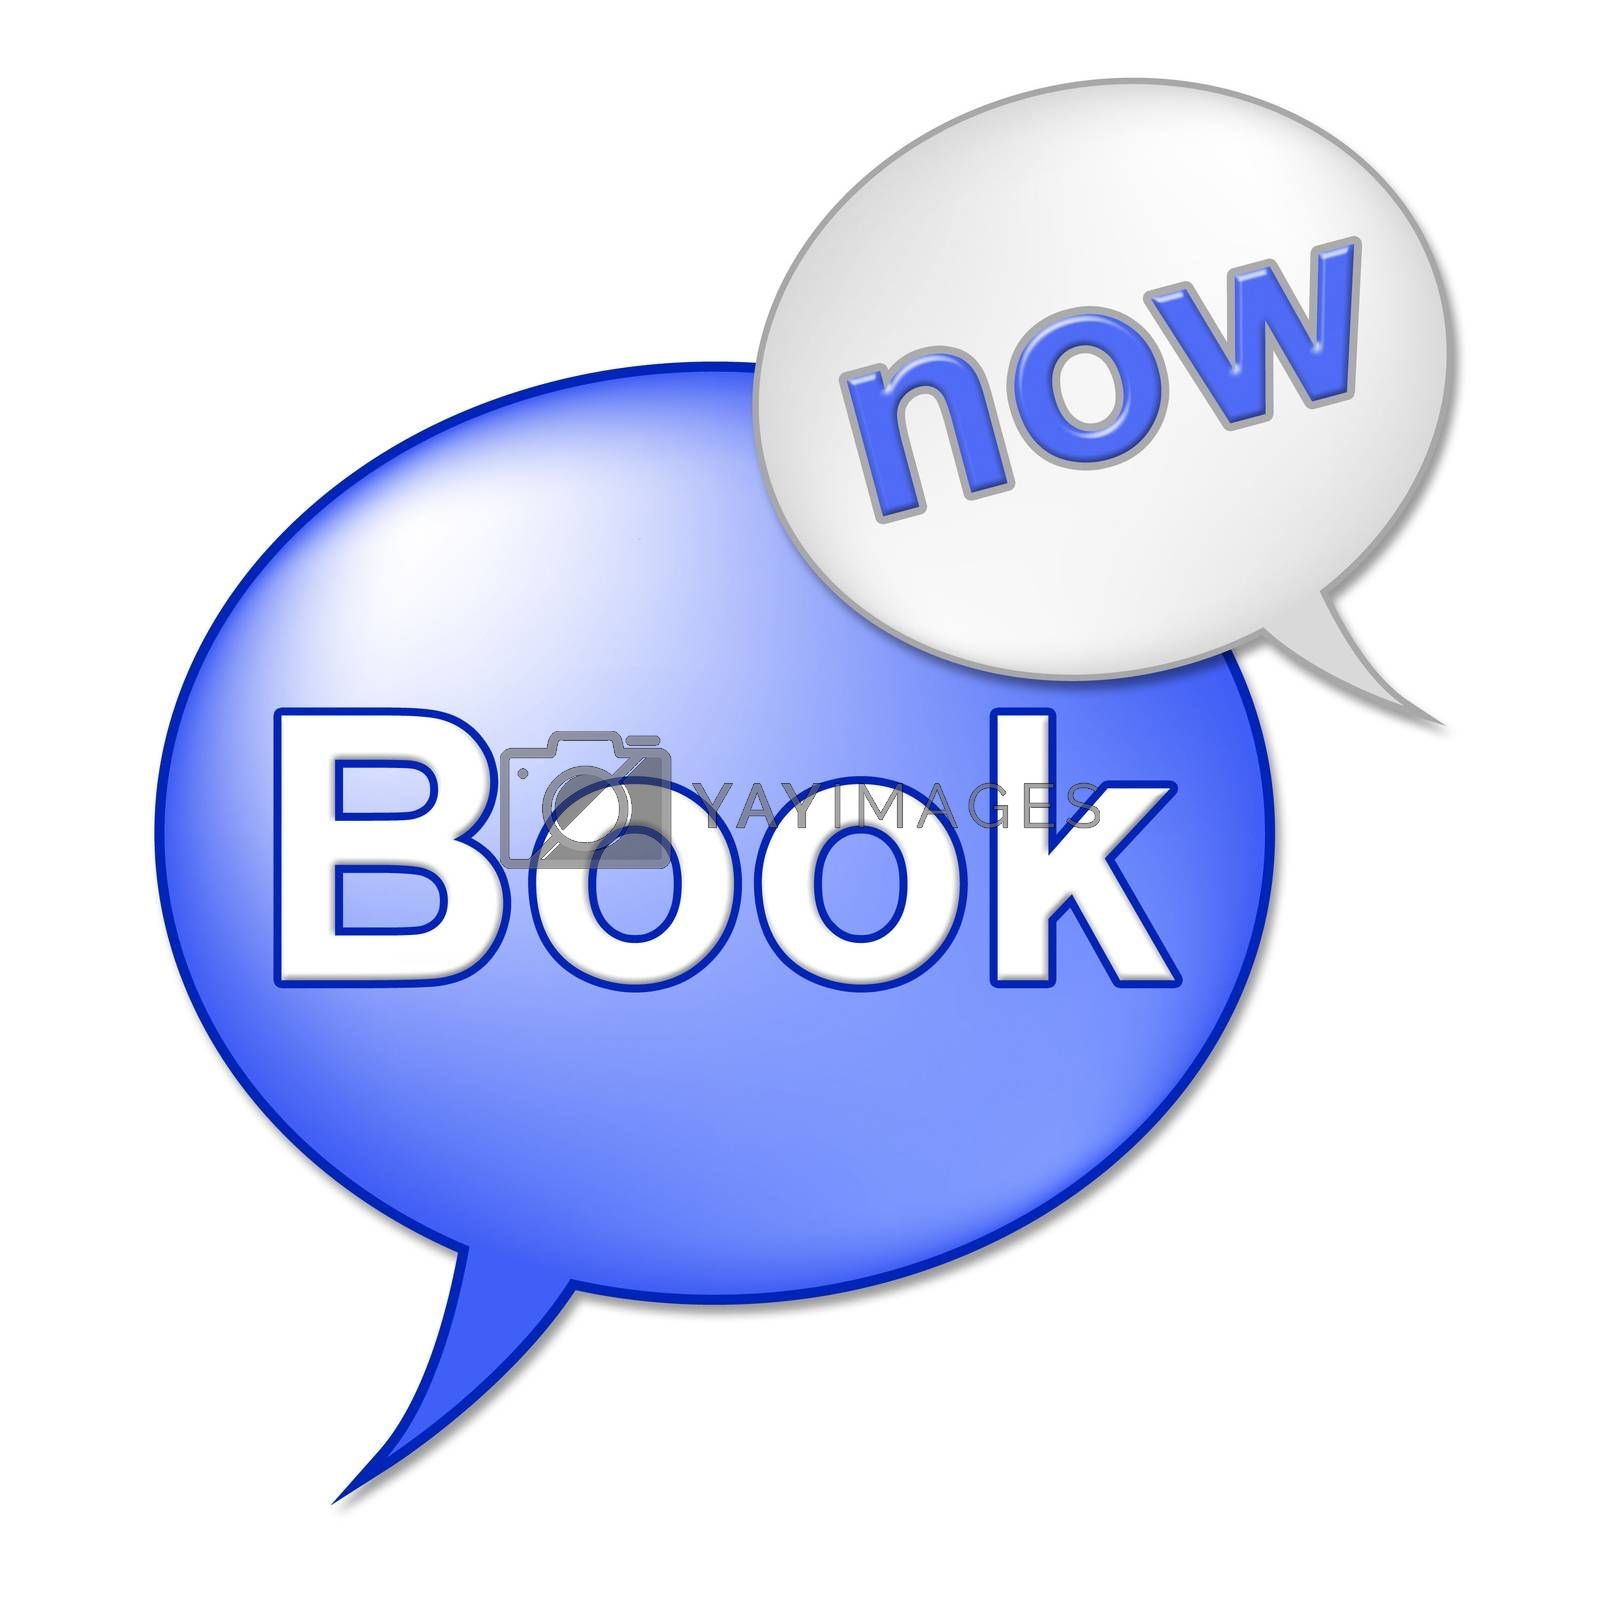 Book Now Message Means At The Moment And Booked by stuartmiles